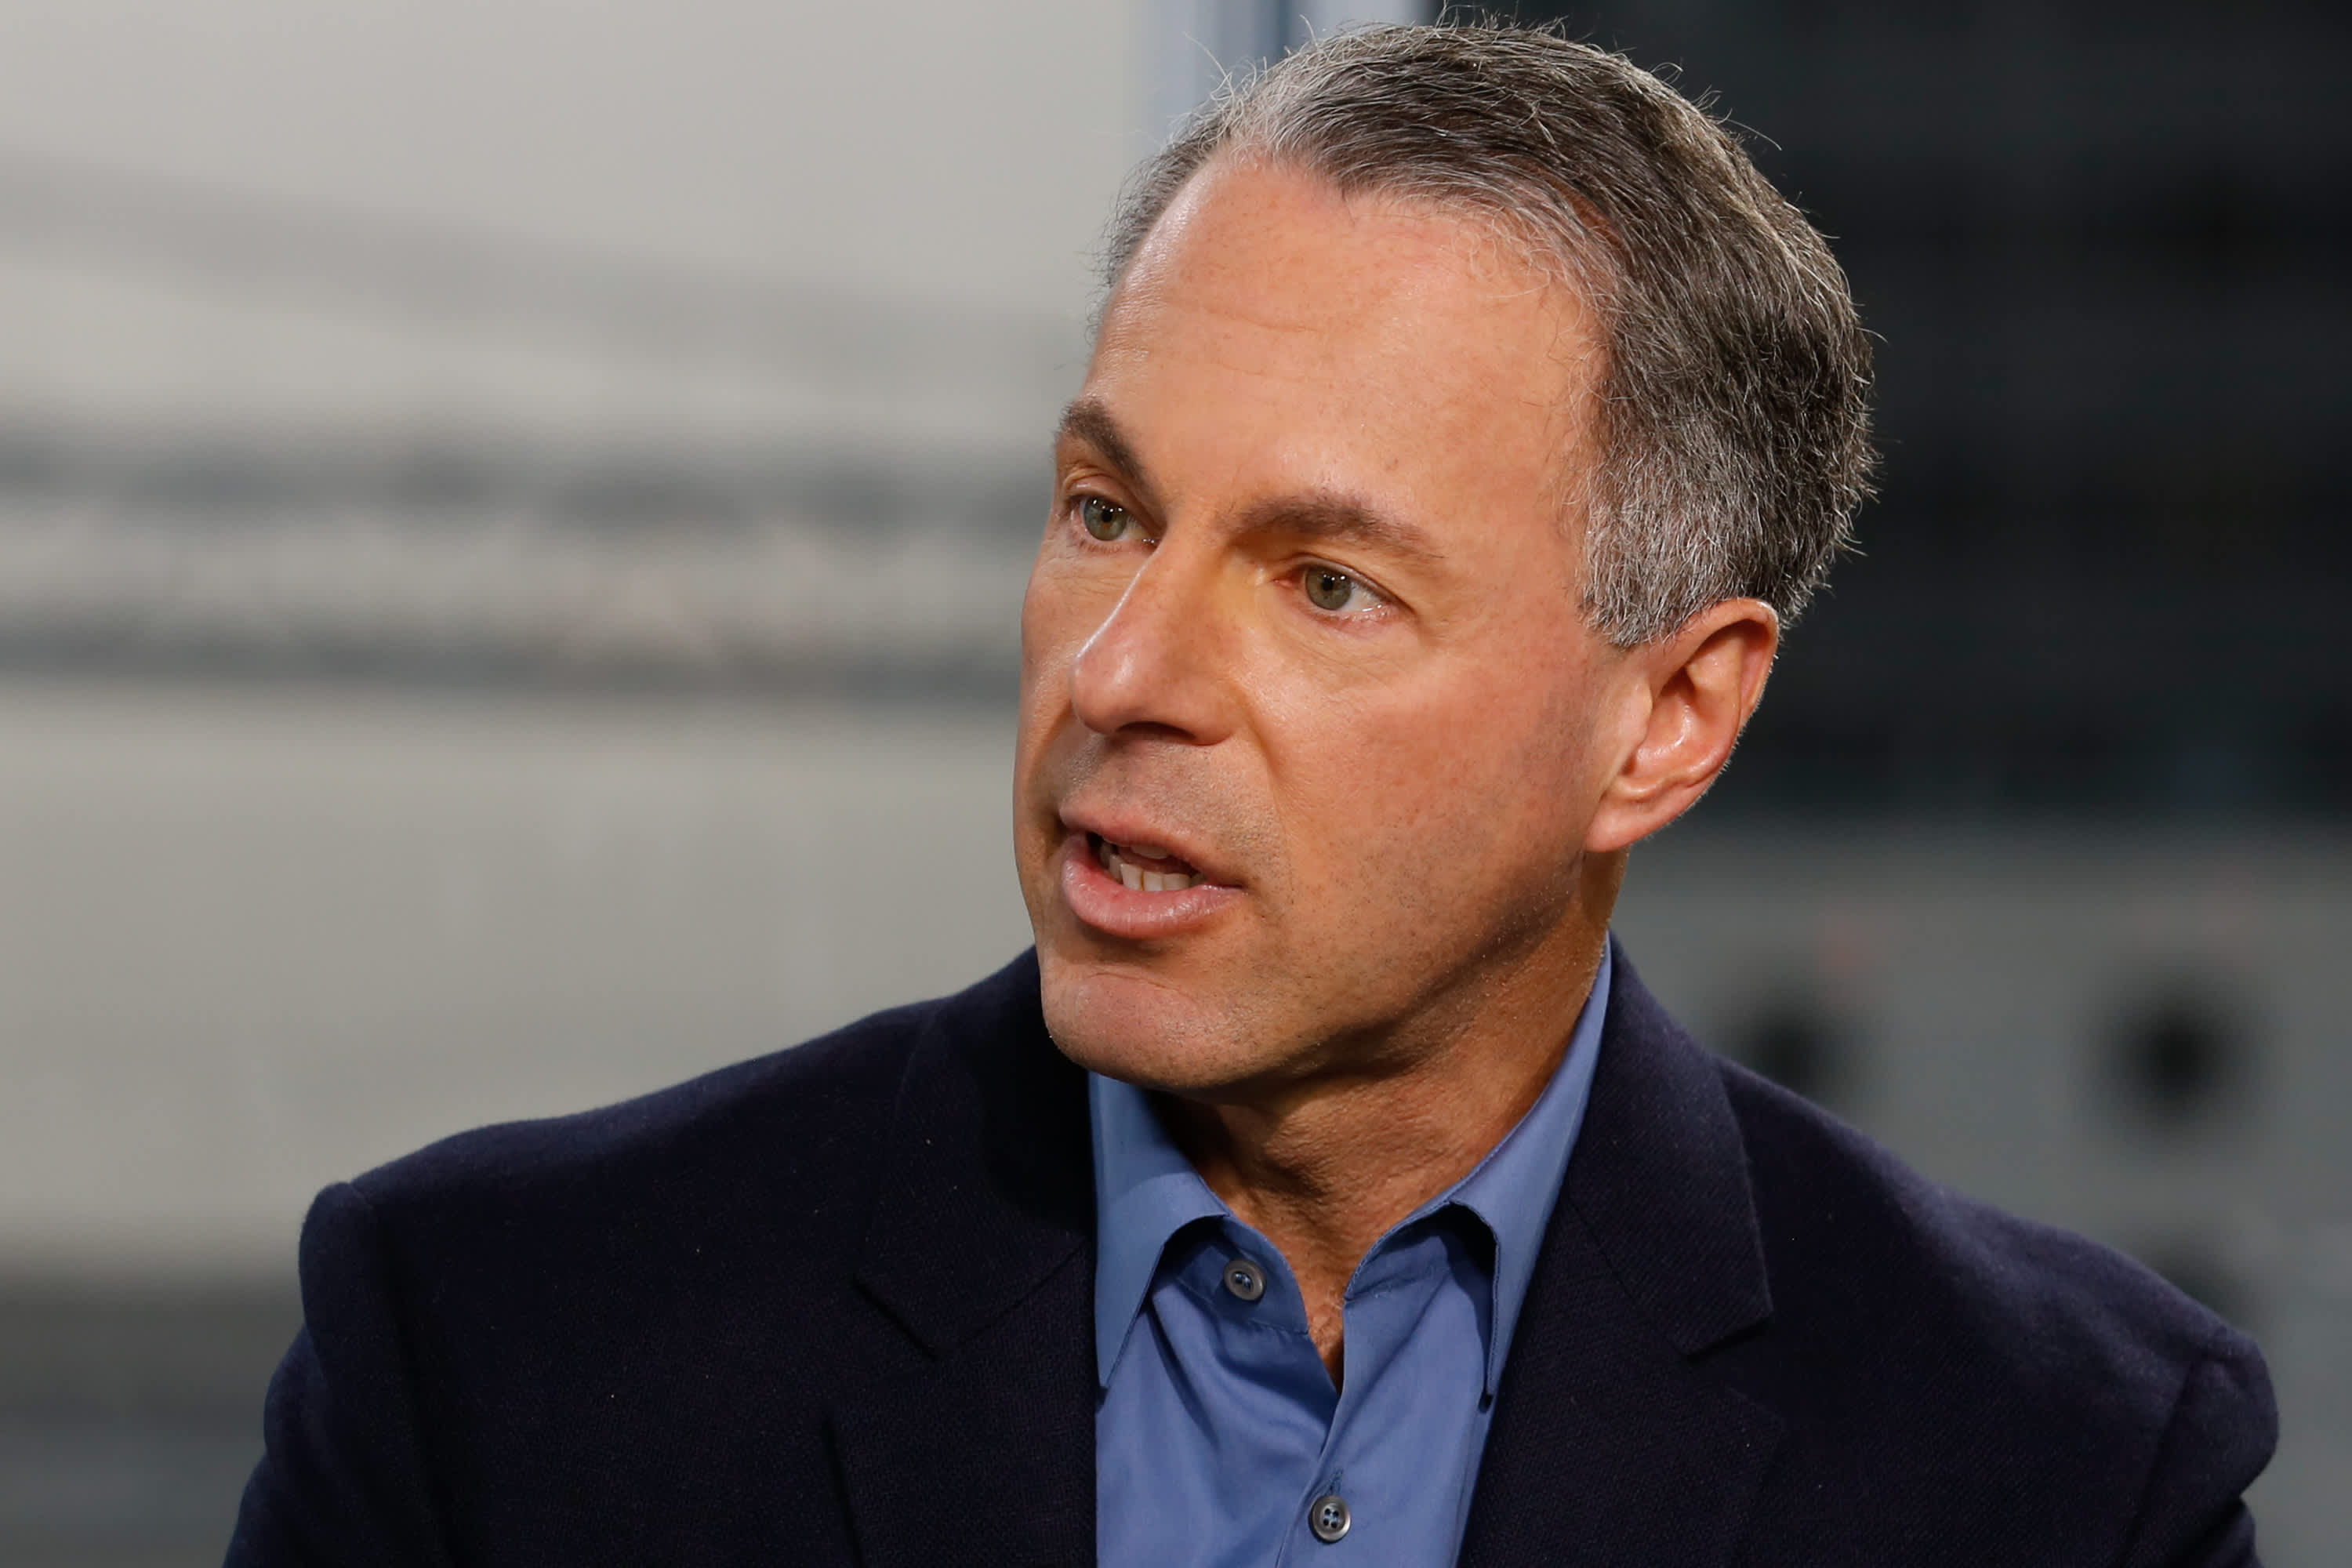 EBay CEO Devin Wenig is stepping down as the company reviews potential sale of assets